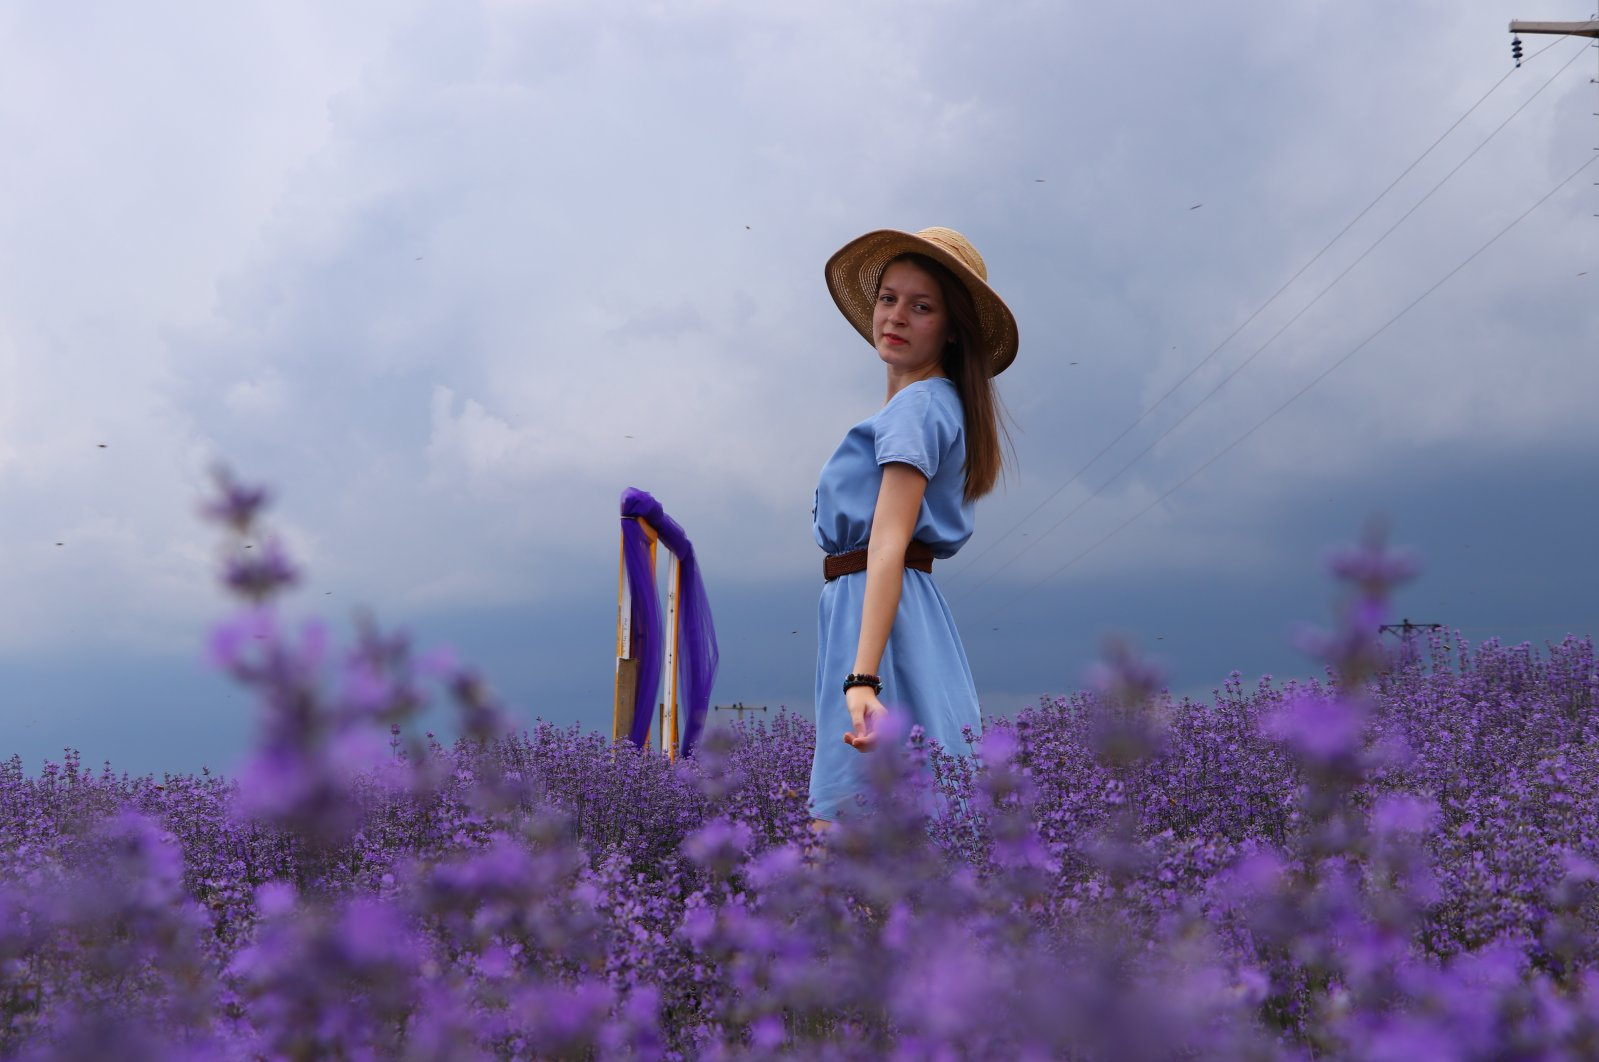 Lavender fields have proven popular spots in recent years for impromptu photo ops. (AA Photo)